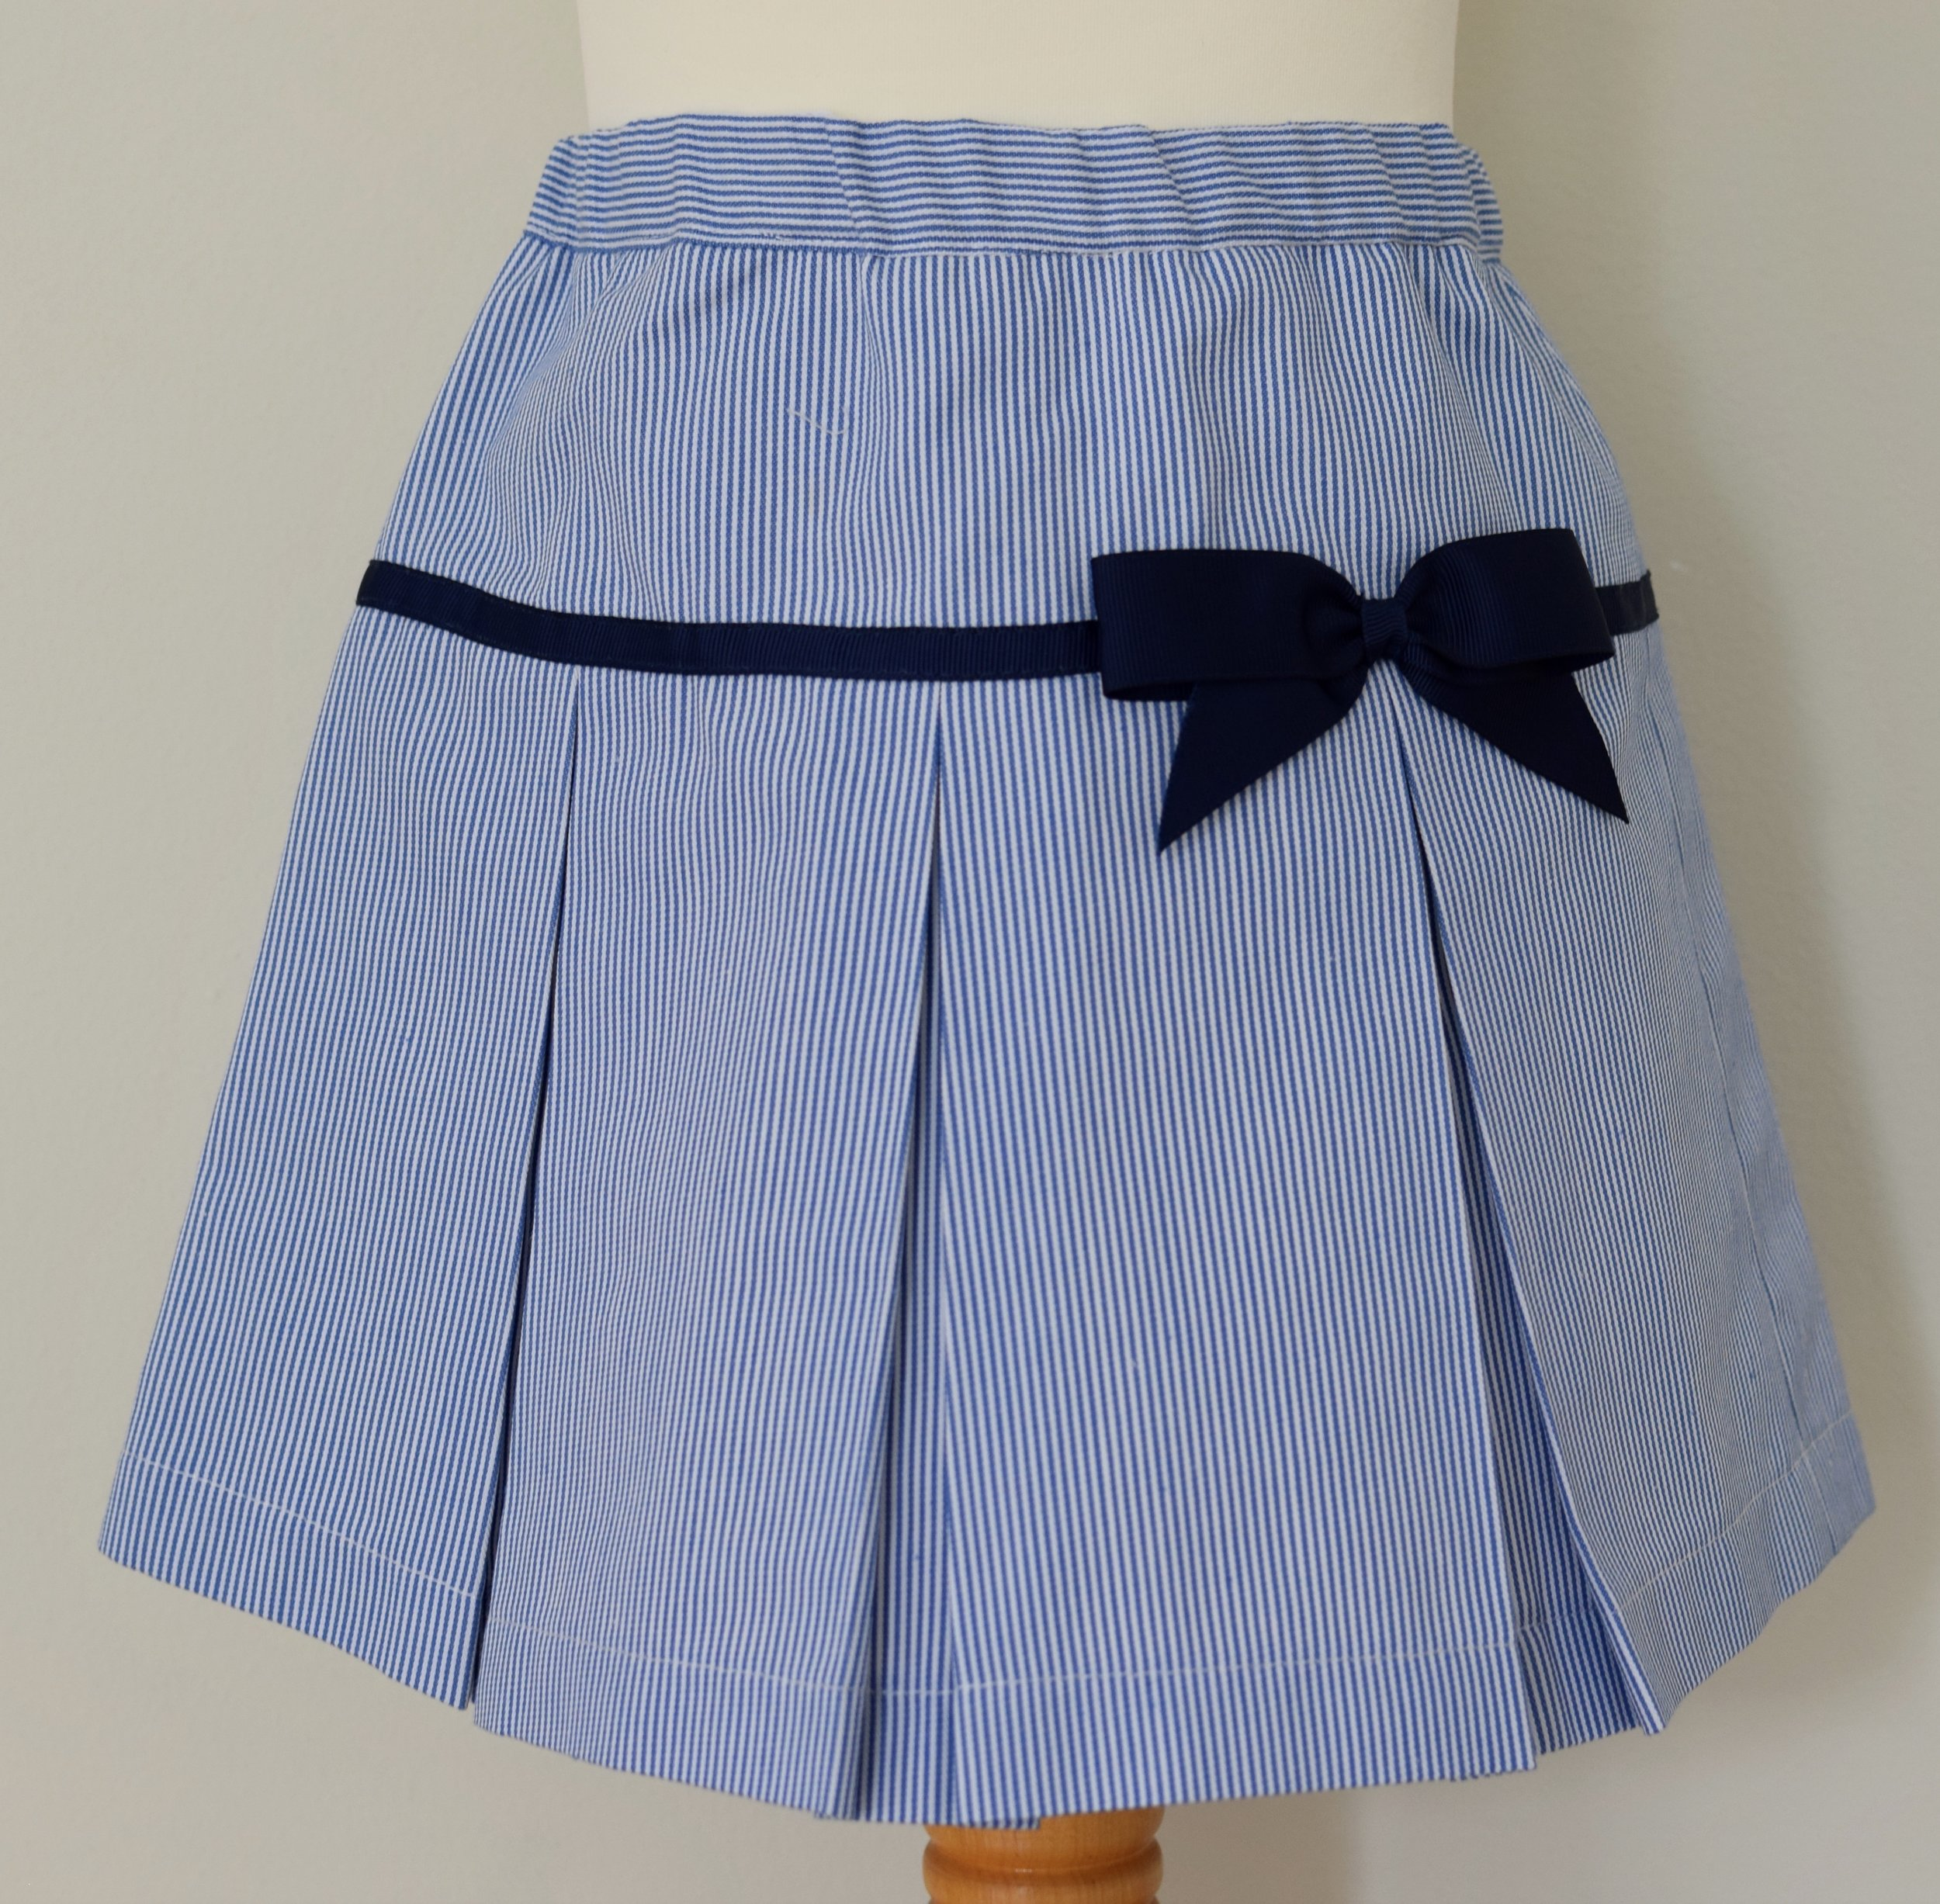 Ticking stripe pleated skirt with an elasticated and adjustable waist, fixed navy grosgrain ribbon.  £25